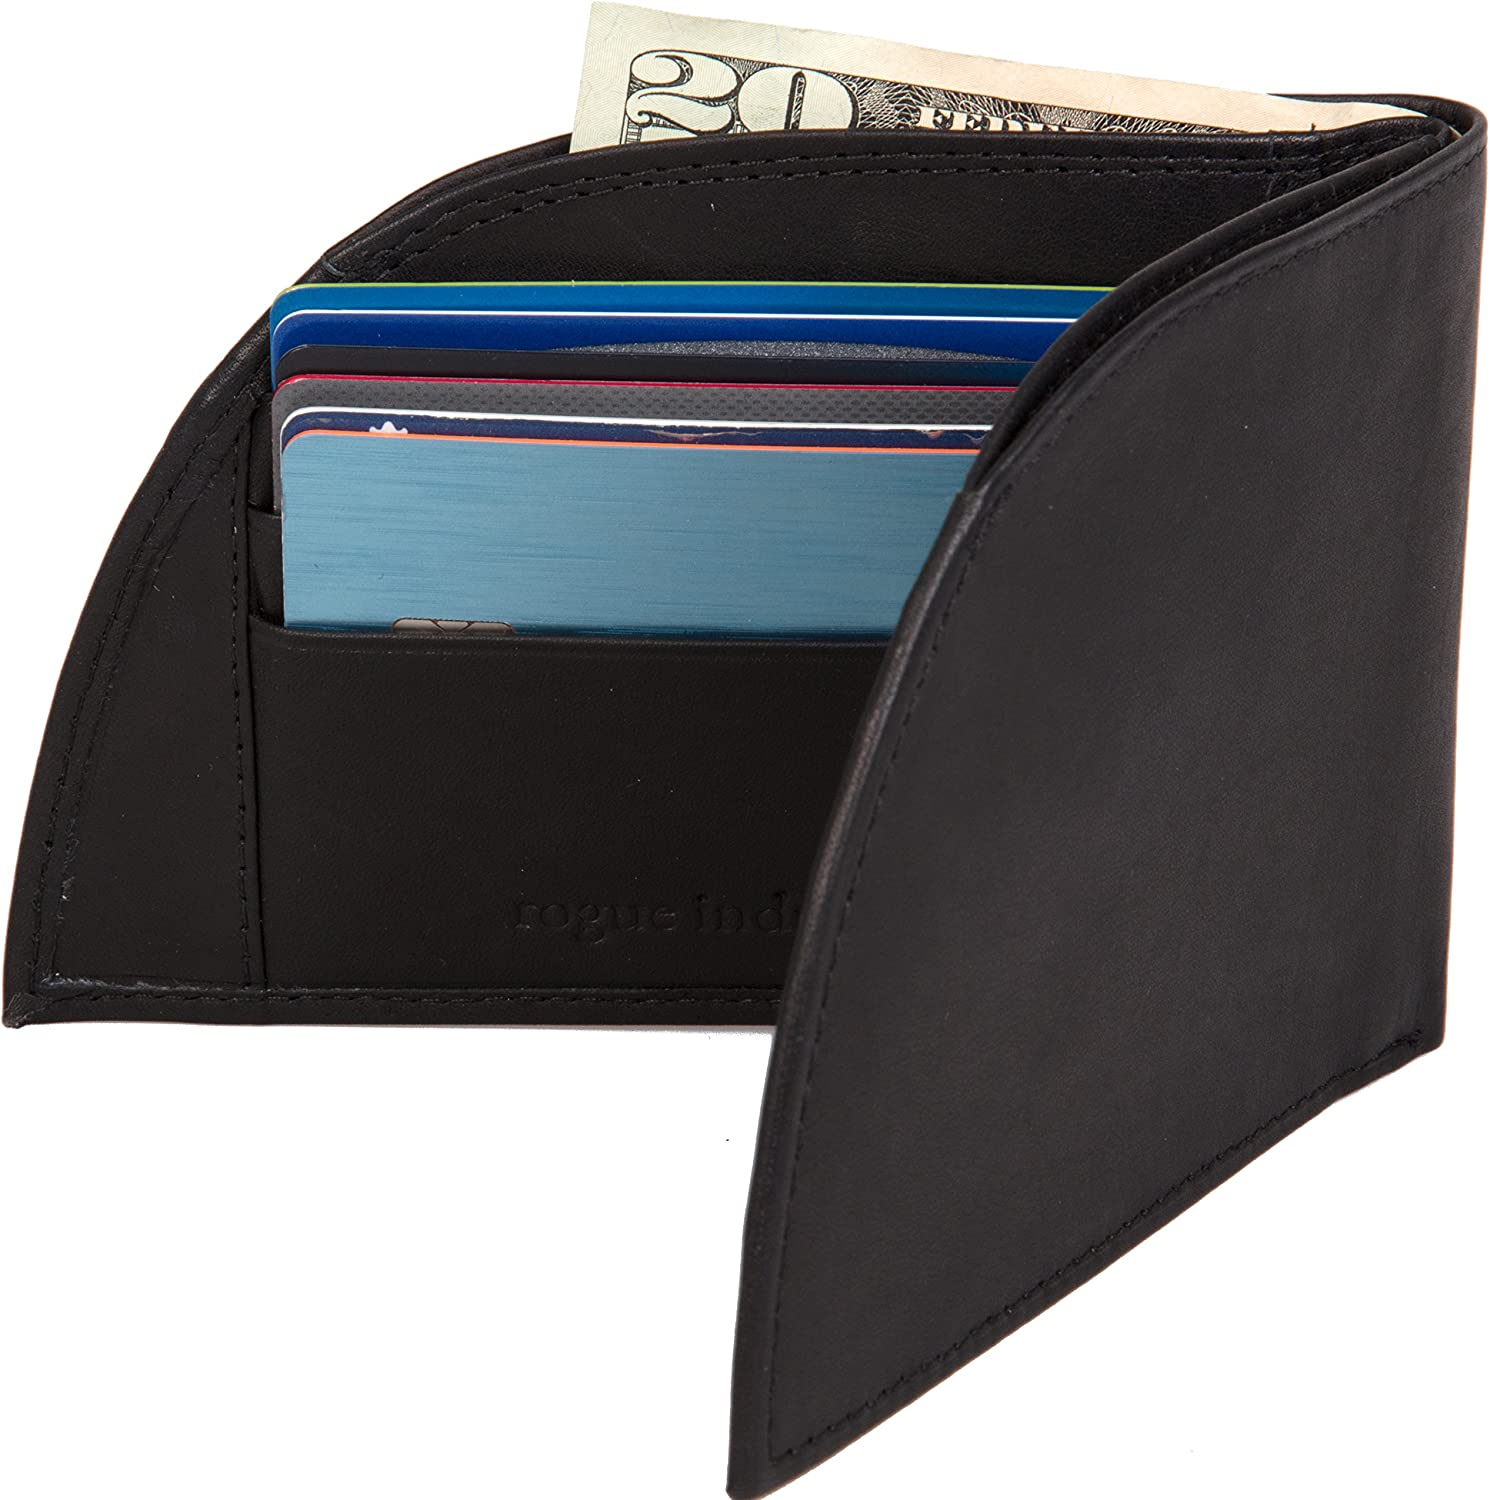 Front Pocket Wallet by Rogue Industries Classic Wallet in Genuine Top Grain